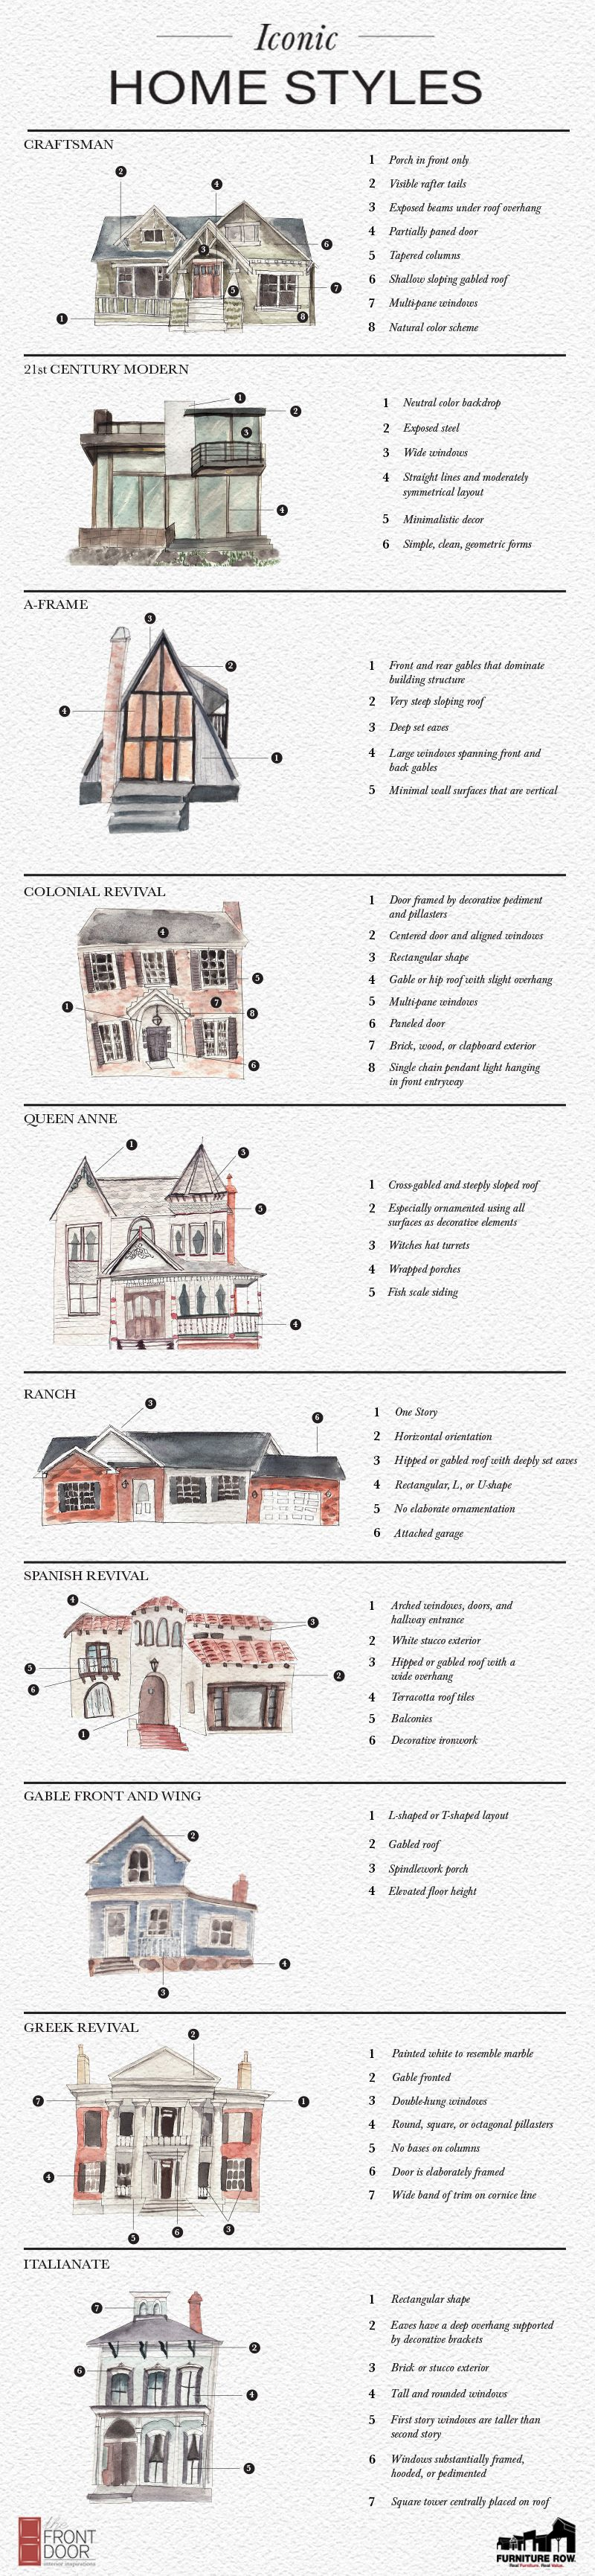 Iconic Home Styles | Pinterest | Infographic, House and Architecture